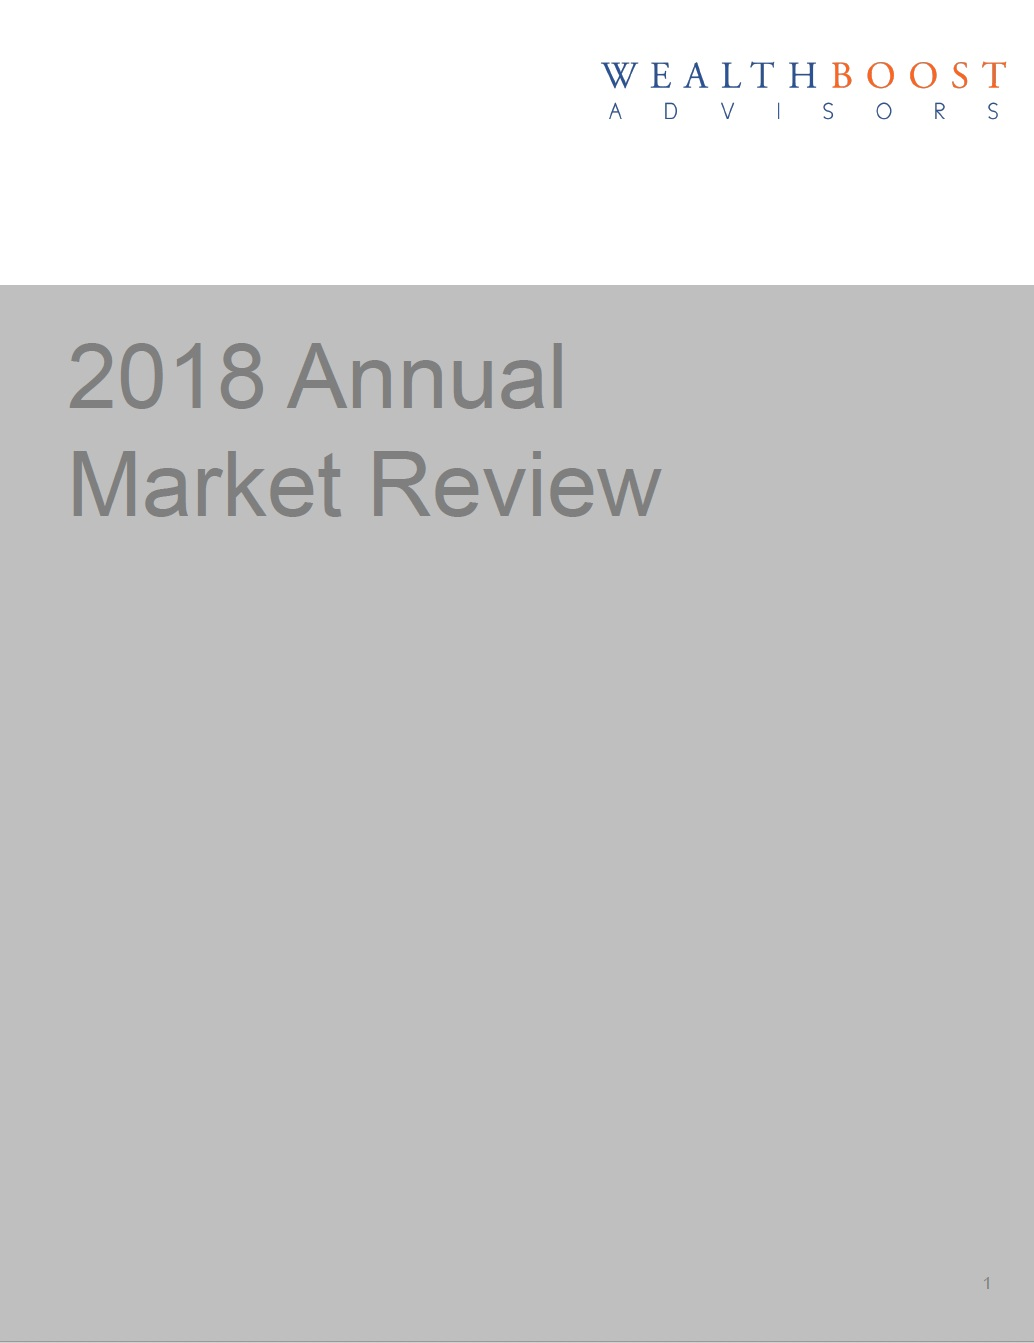 2018+Annual+Market+Review.jpg